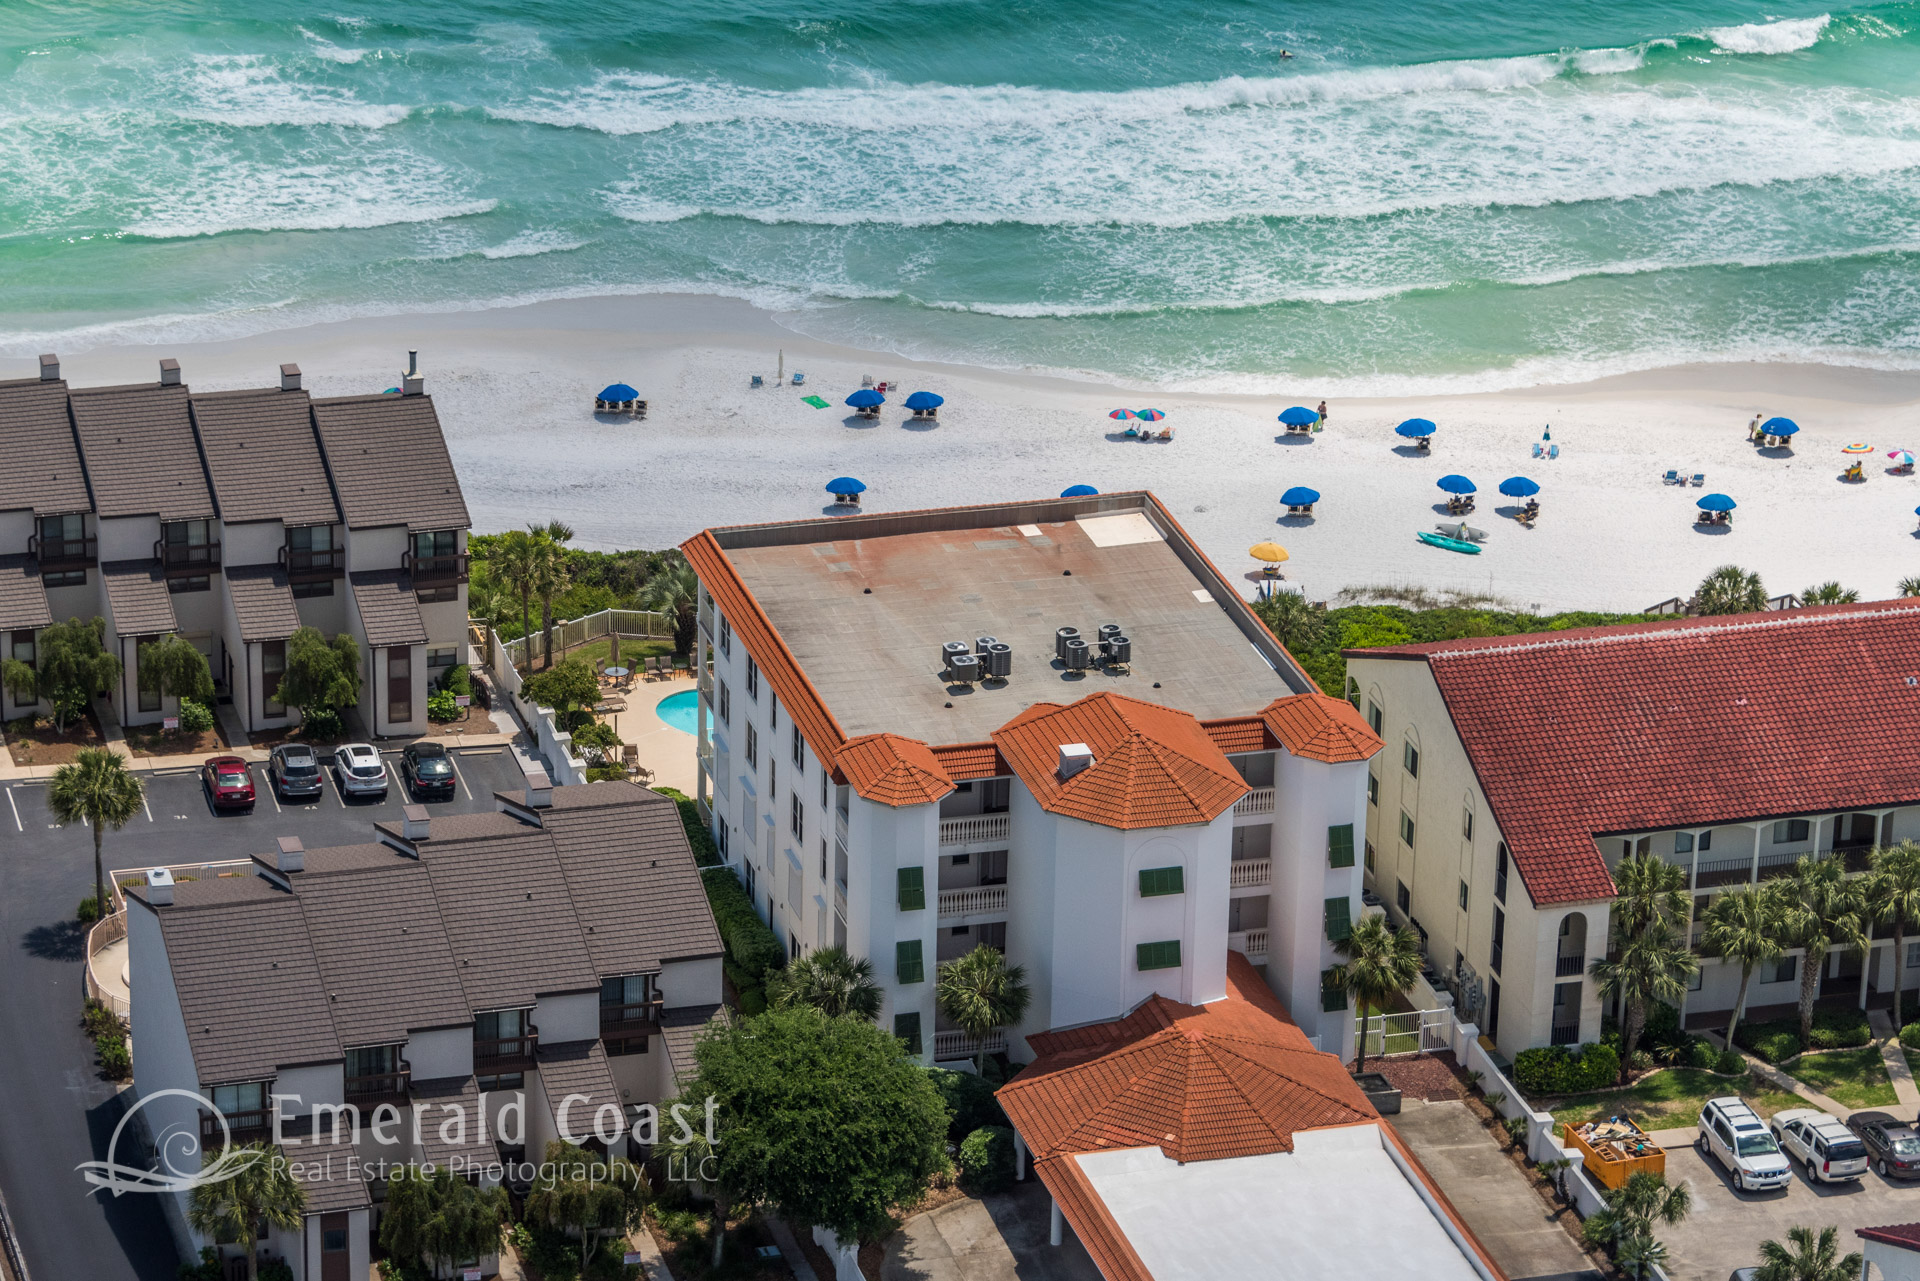 Aerial Photo of Grand Play Seacrest Beach, Florida